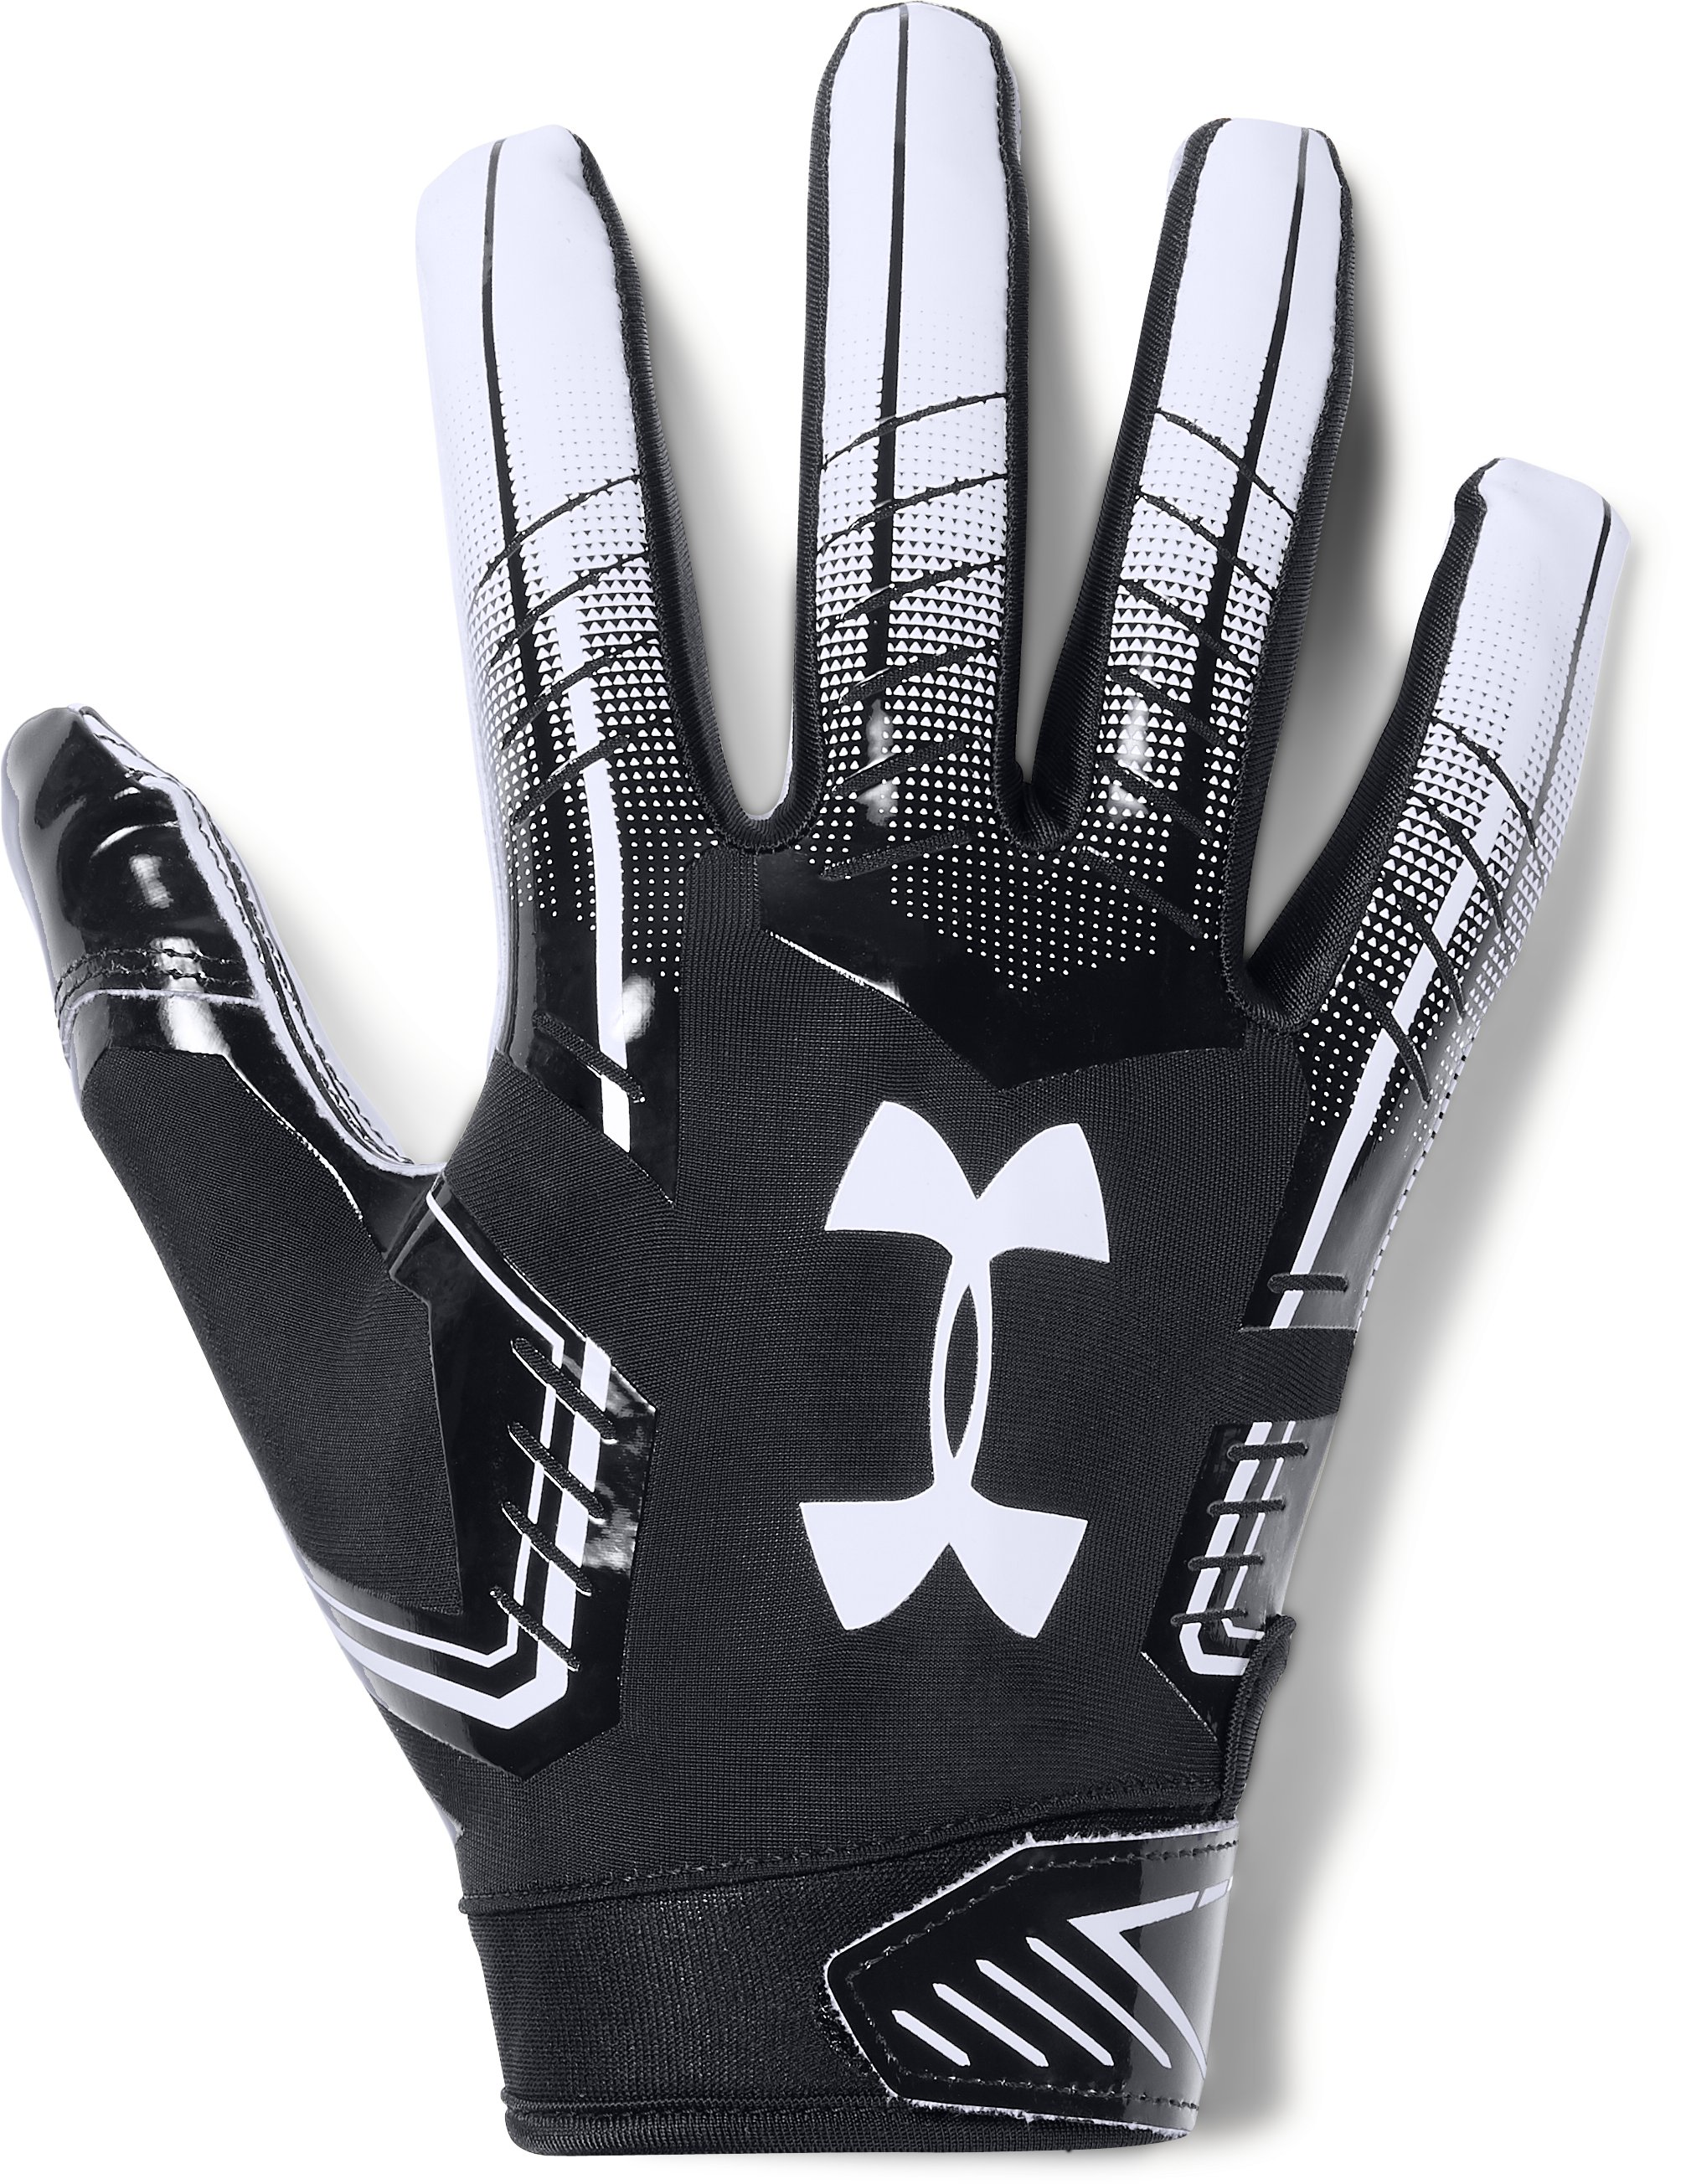 extra small gloves Men's UA F6 Football Gloves <strong>Seamless</strong>, one-piece <strong>palm</strong>